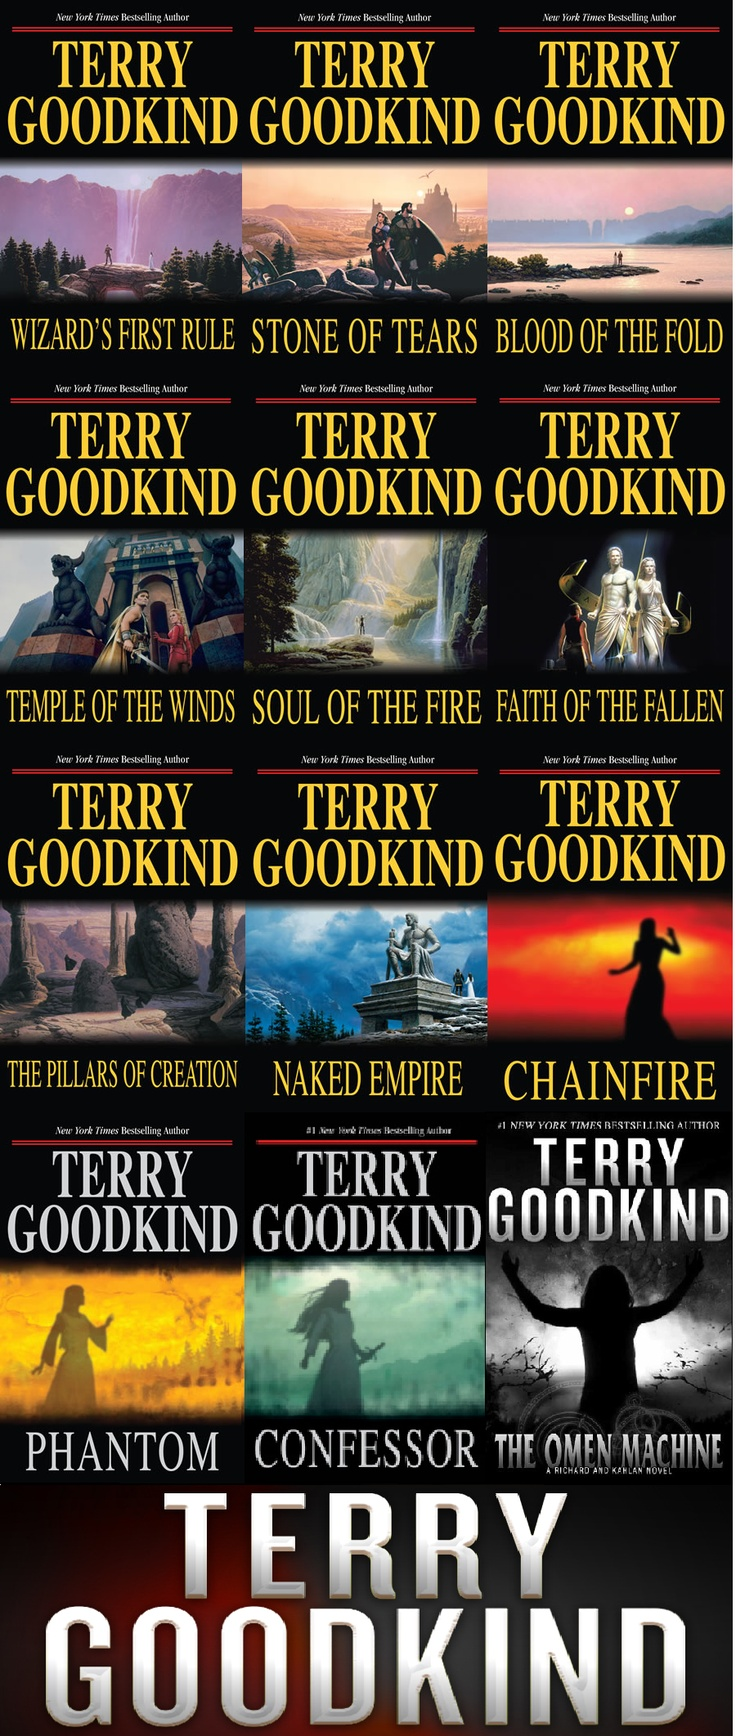 The Sword of Truth series by  Terry Goodkind.  I love these books, the character development, the continuity and excitement of the plotline, the passion and descriptive talent of a master writer, Terry Goodkind.  Richard, Kahlan, Cara, Zedd, Shota, Darken Rahl, Berdine, Nikki, Jagang, Ulicia and so many more great characters.